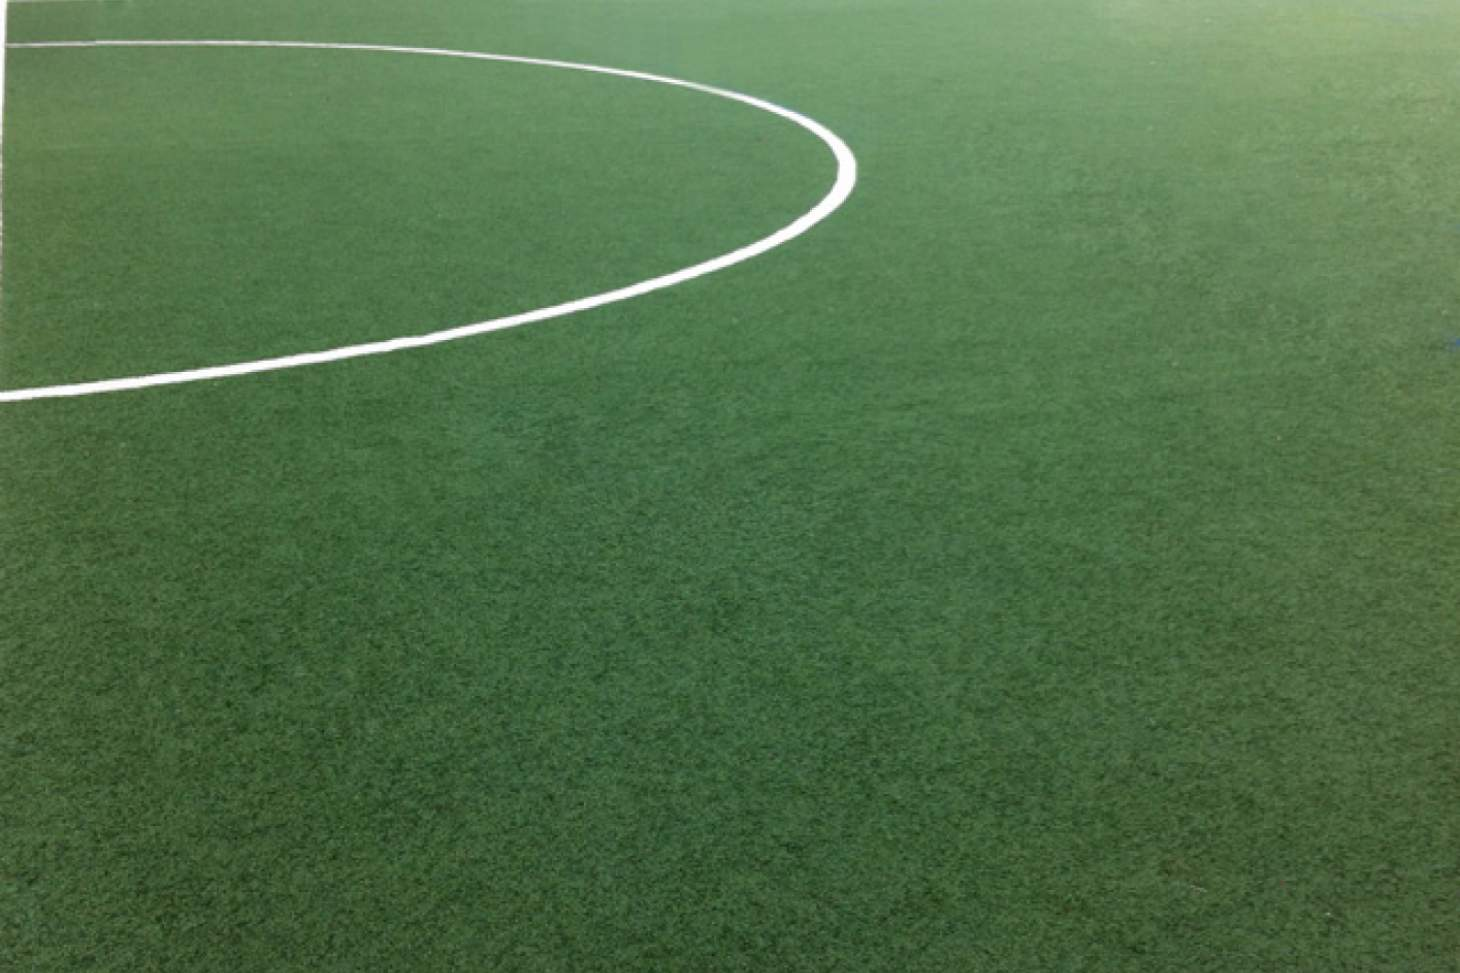 South Manchester Sports Club 7 a side | Astroturf football pitch